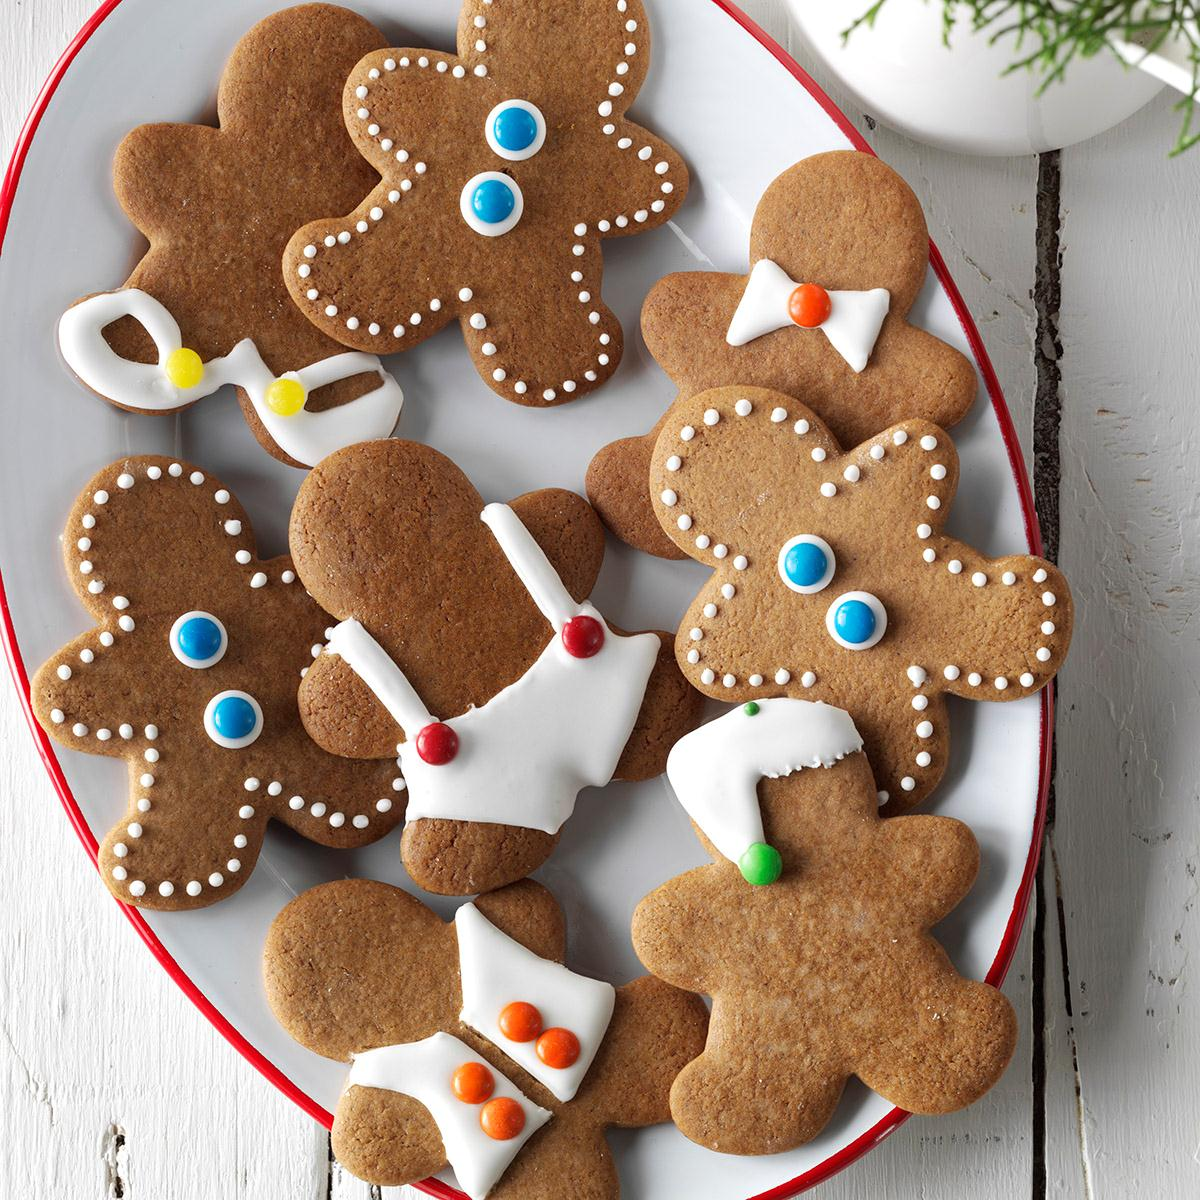 Christmas Themed Cakes And Biscuits